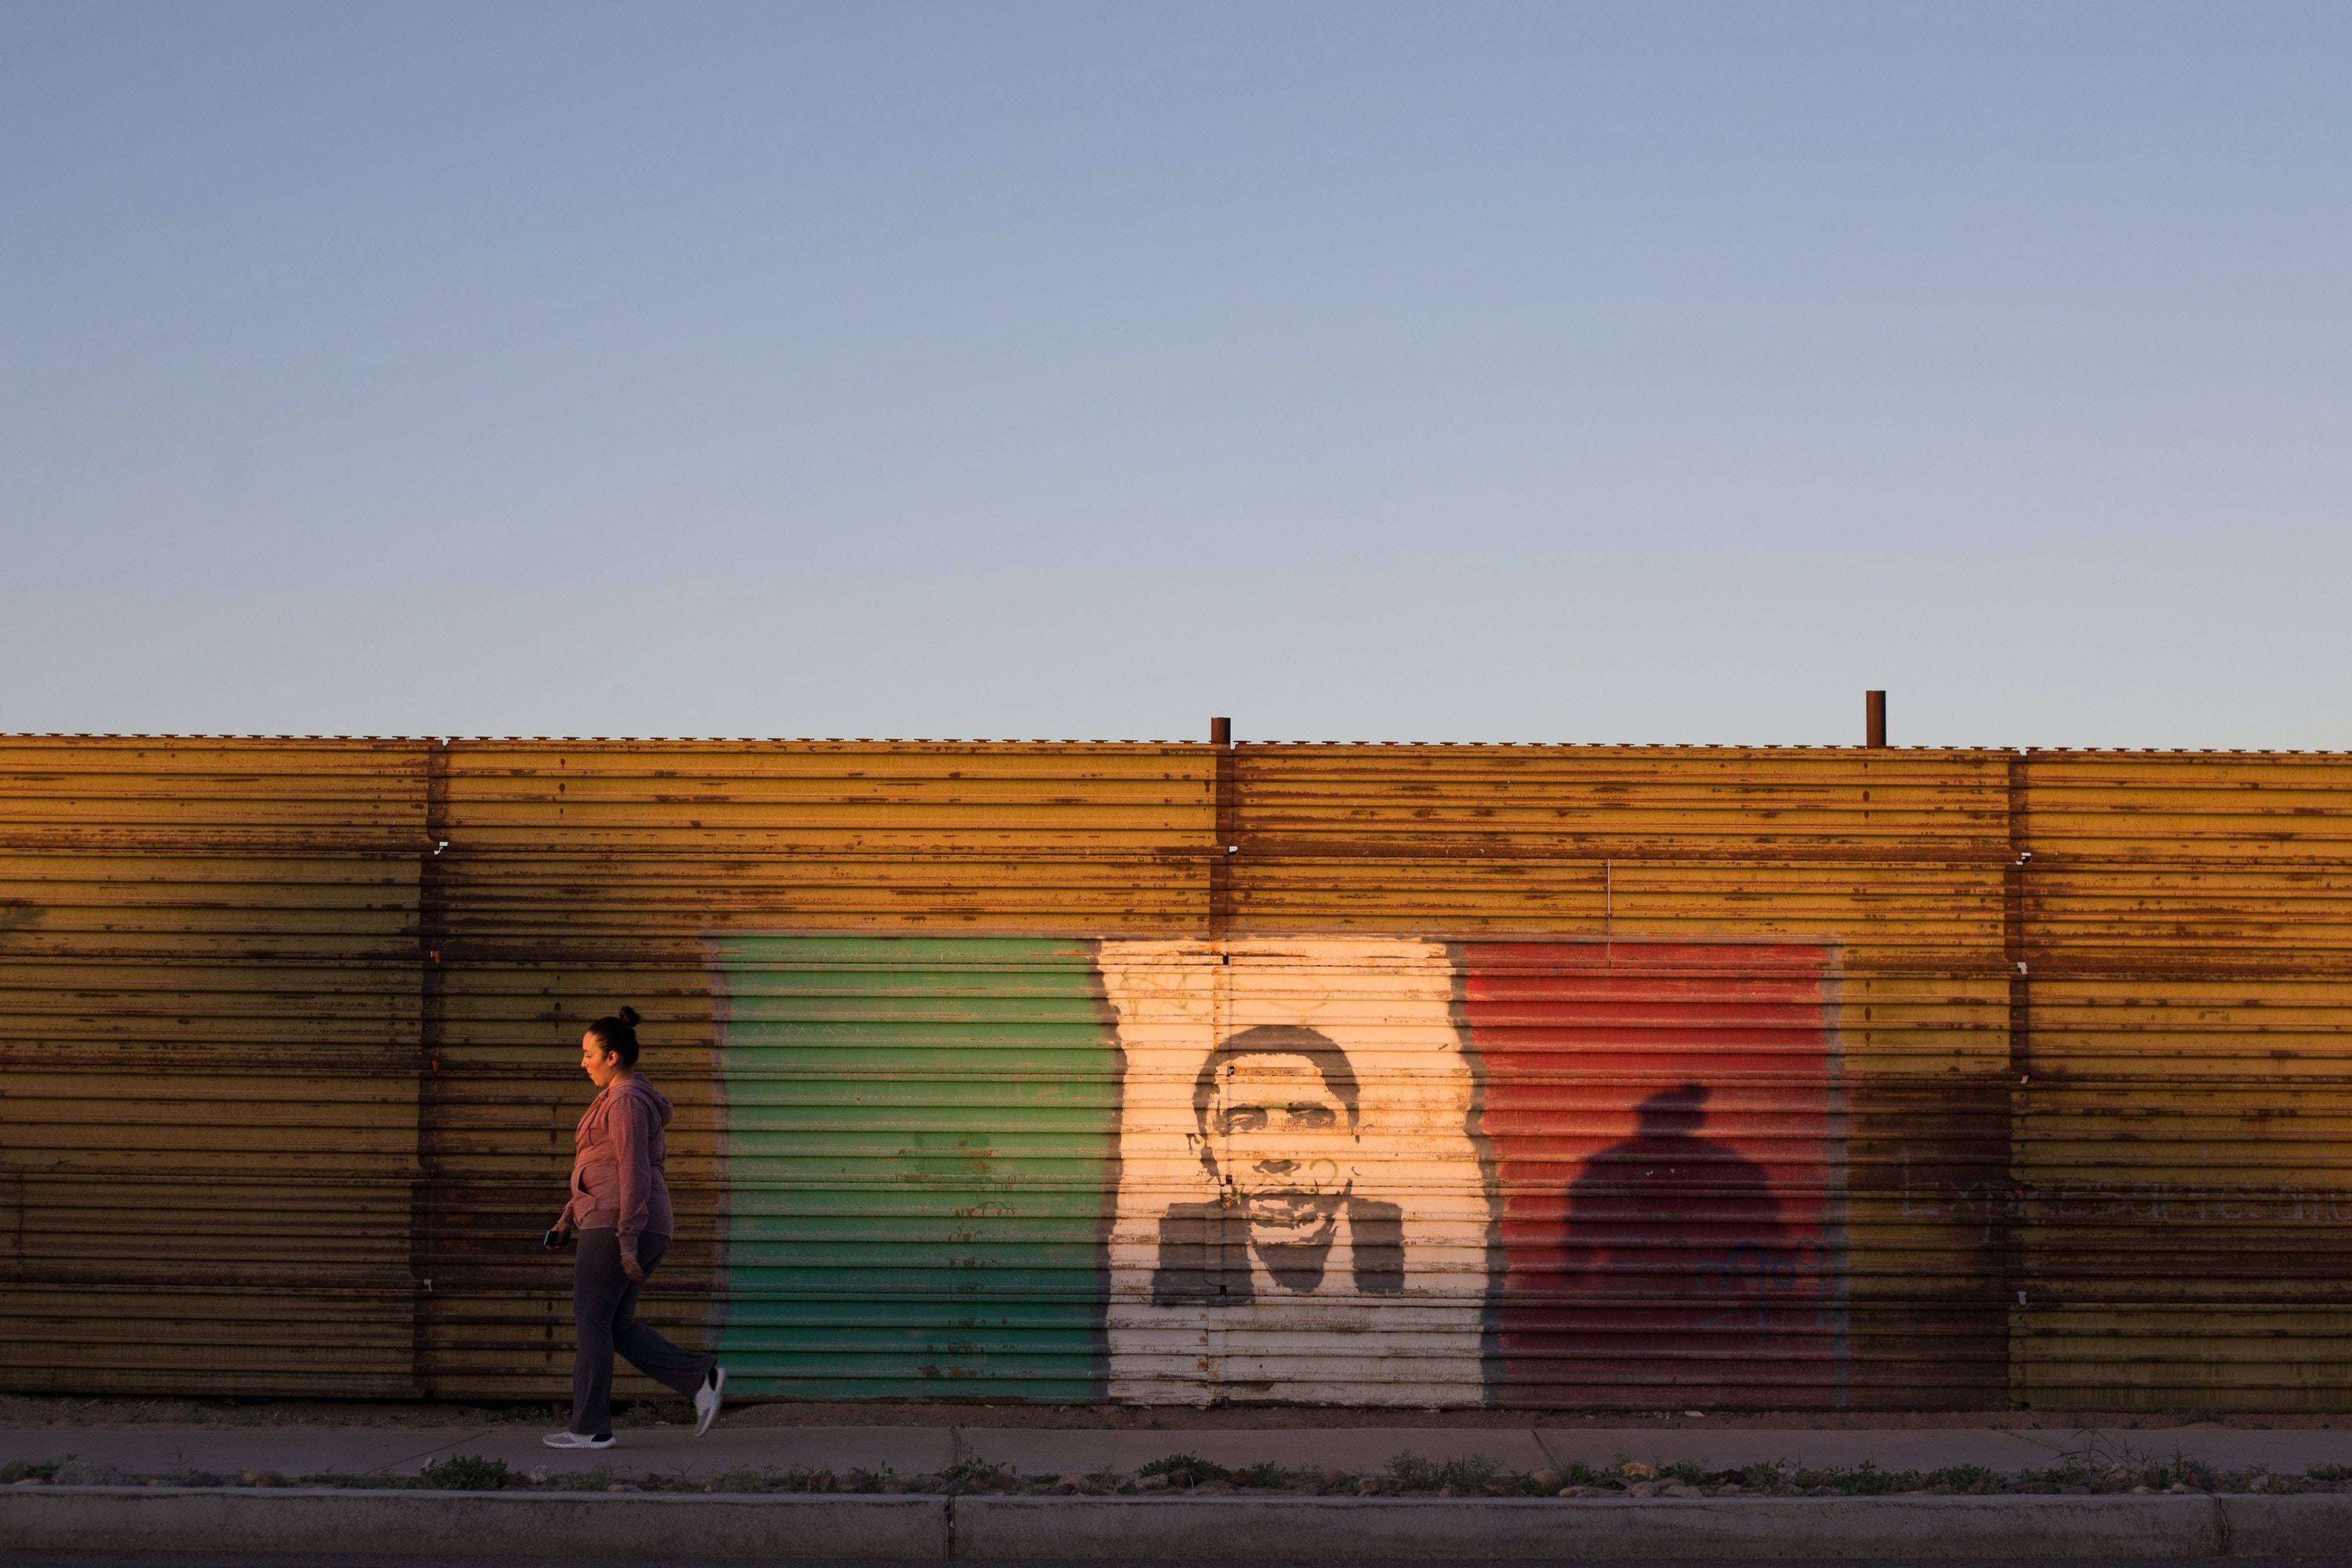 TOPSHOT - A woman walks next to a painting of former US President Barack Obama at the US/Mexico border fence in San Luis Rio Colorado, Sonora state, on February 15, 2017, northwestern Mexico. Attention Editors, this image is part of an ongoing AFP photo project documenting the life on the two sides of the US/Mexico border simultaneously by two photographers traveling for ten days from California to Texas on the US side and from Baja California to Tamaulipas on the Mexican side between February 13 and 22, 2017. You can find all the images with the keyword : BORDERPROJECT2017 on our wire and on www.afpforum.com / AFP / GUILLERMO ARIAS (Photo credit should read GUILLERMO ARIAS/AFP/Getty Images)